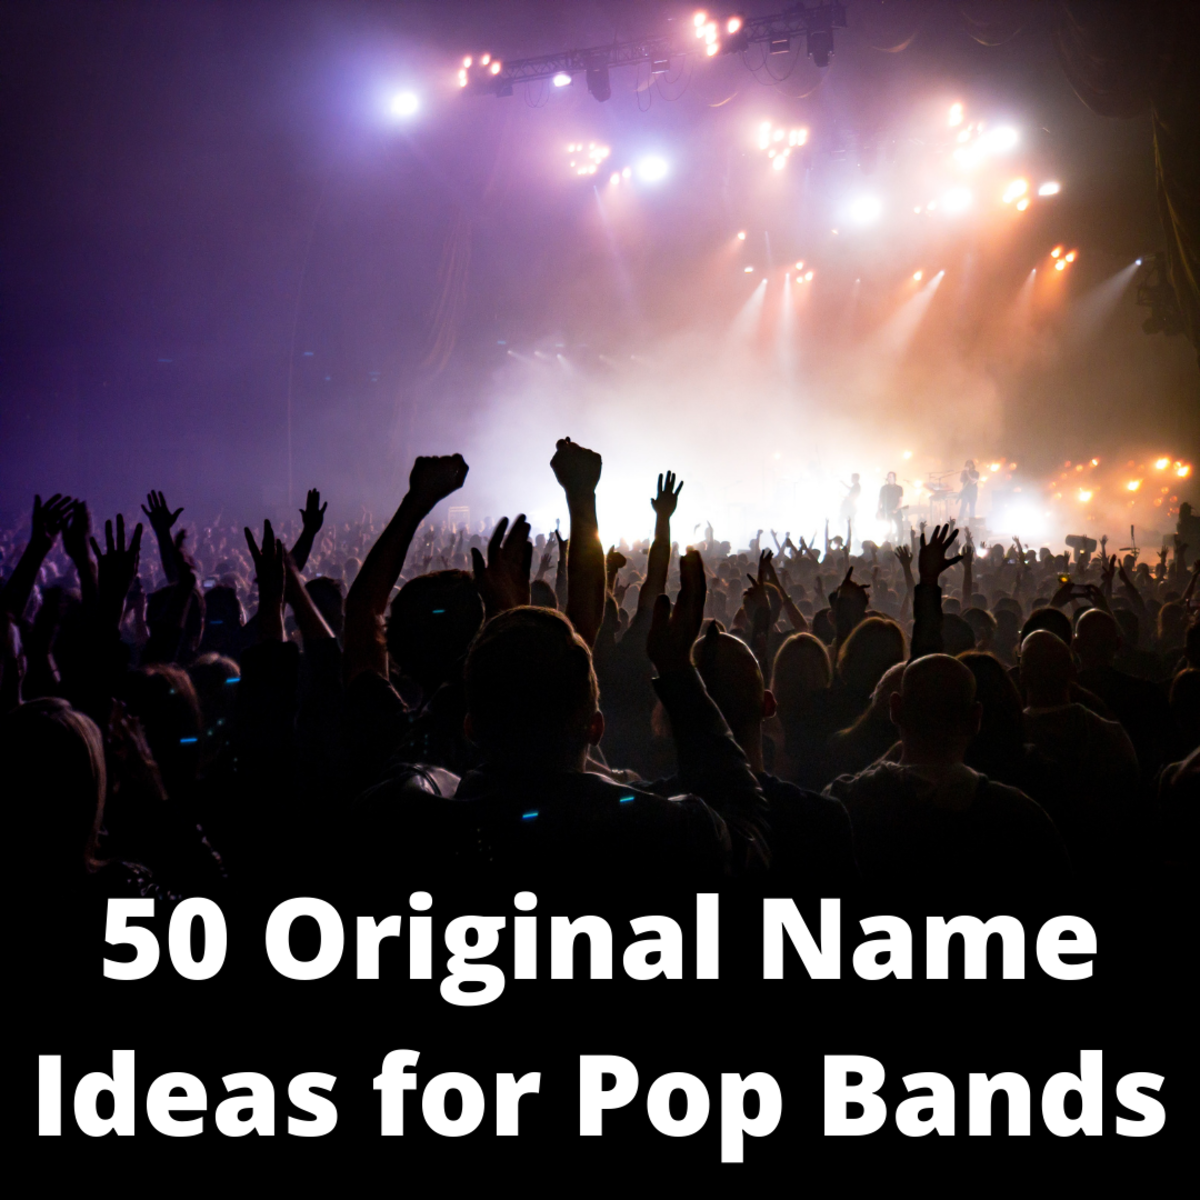 Naming a pop band can be hard. Luckily, this article can help!